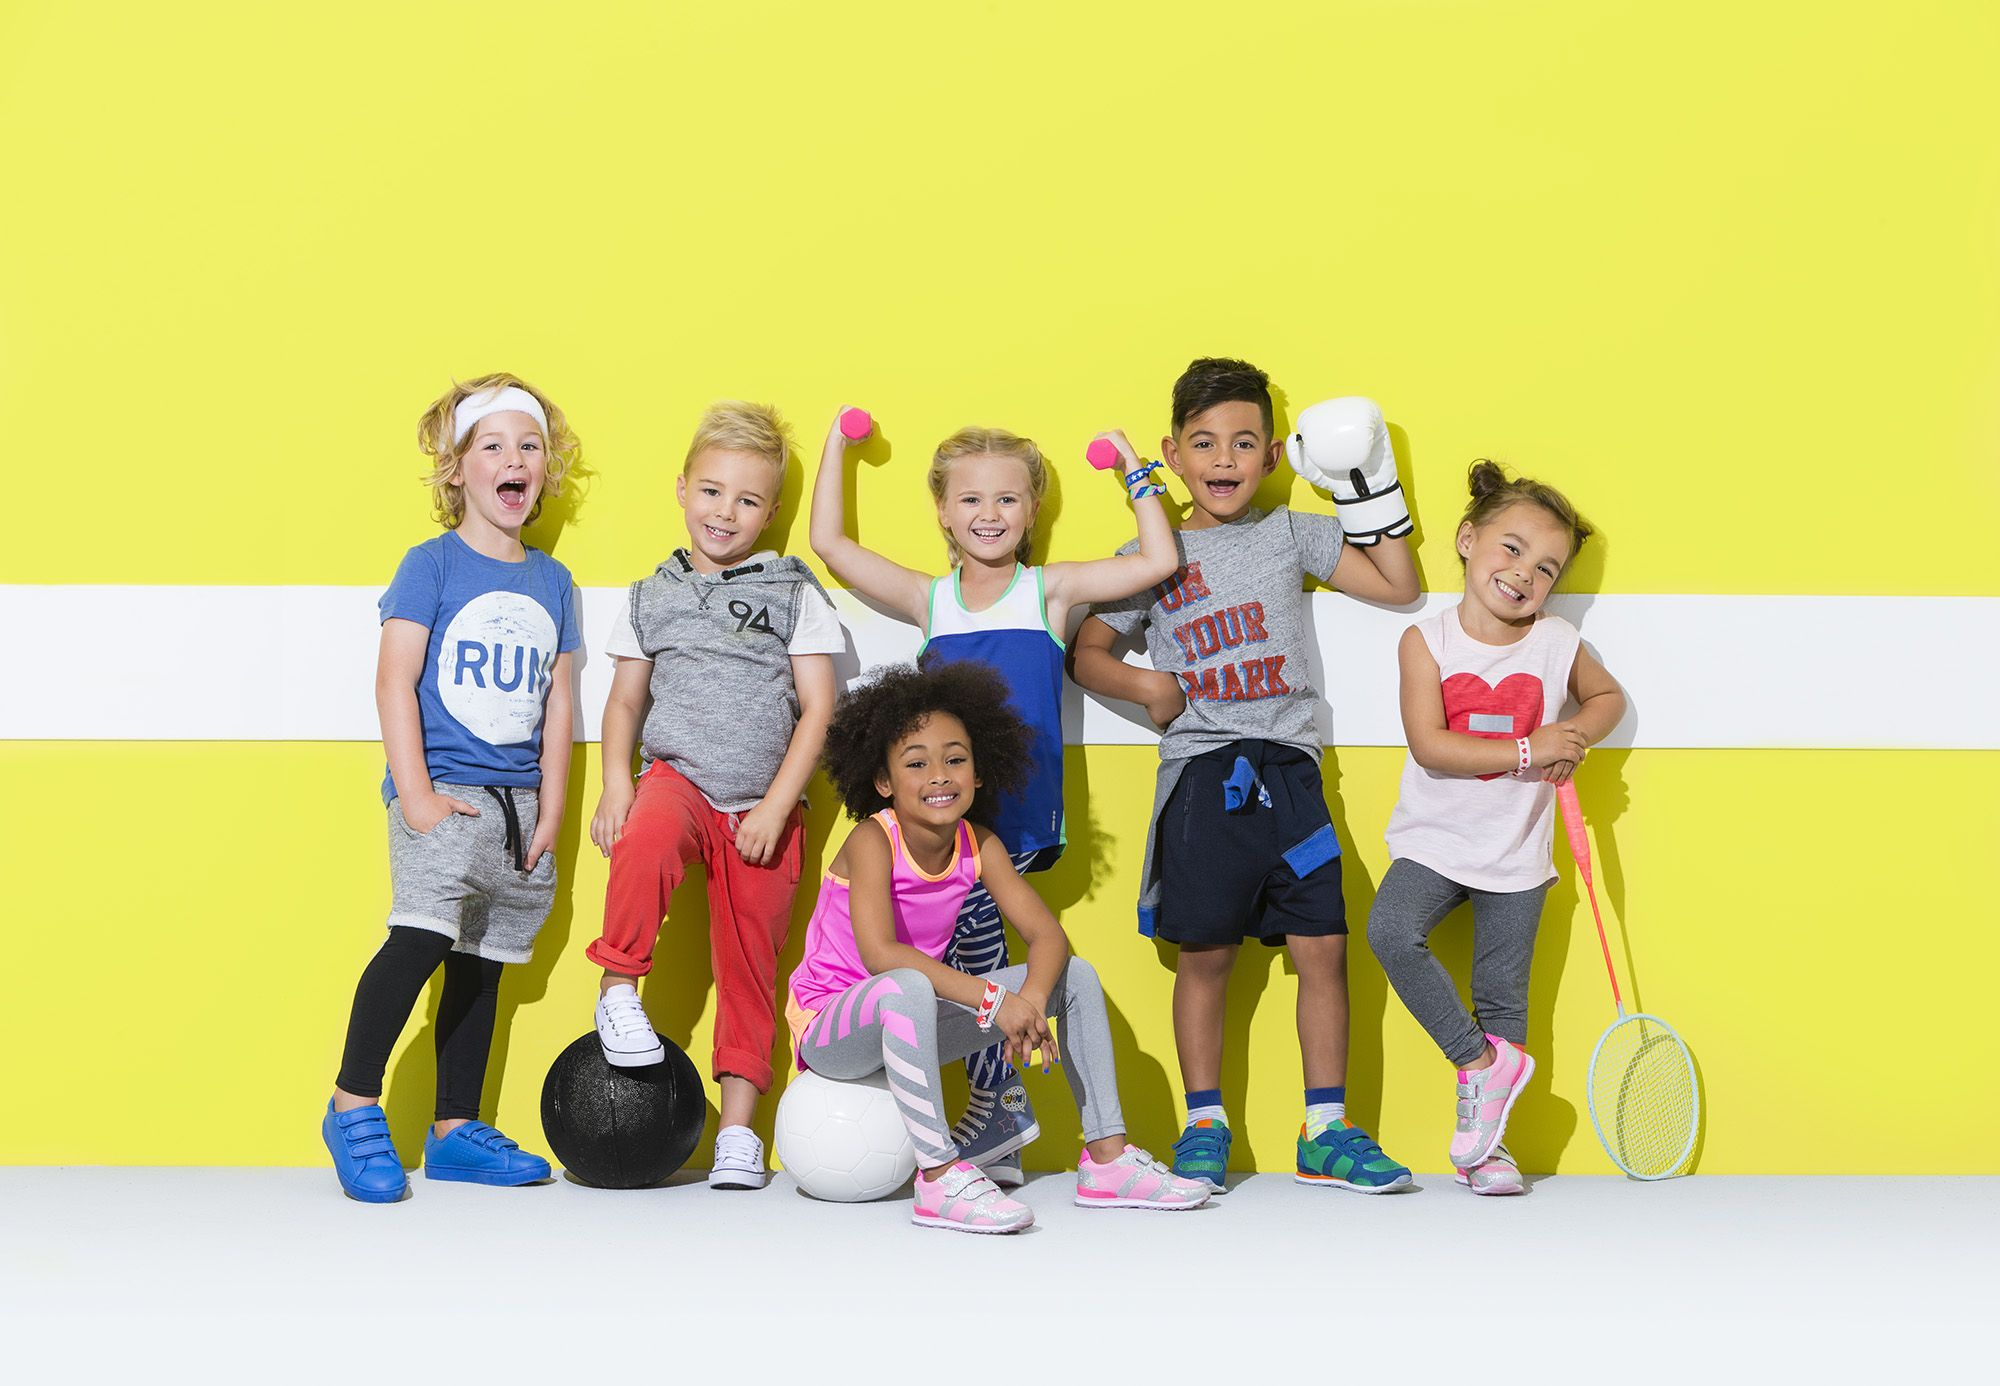 f43cd9d3a0 Cotton On Kids Active Campaign 2016 // www.cottononkids.com ...